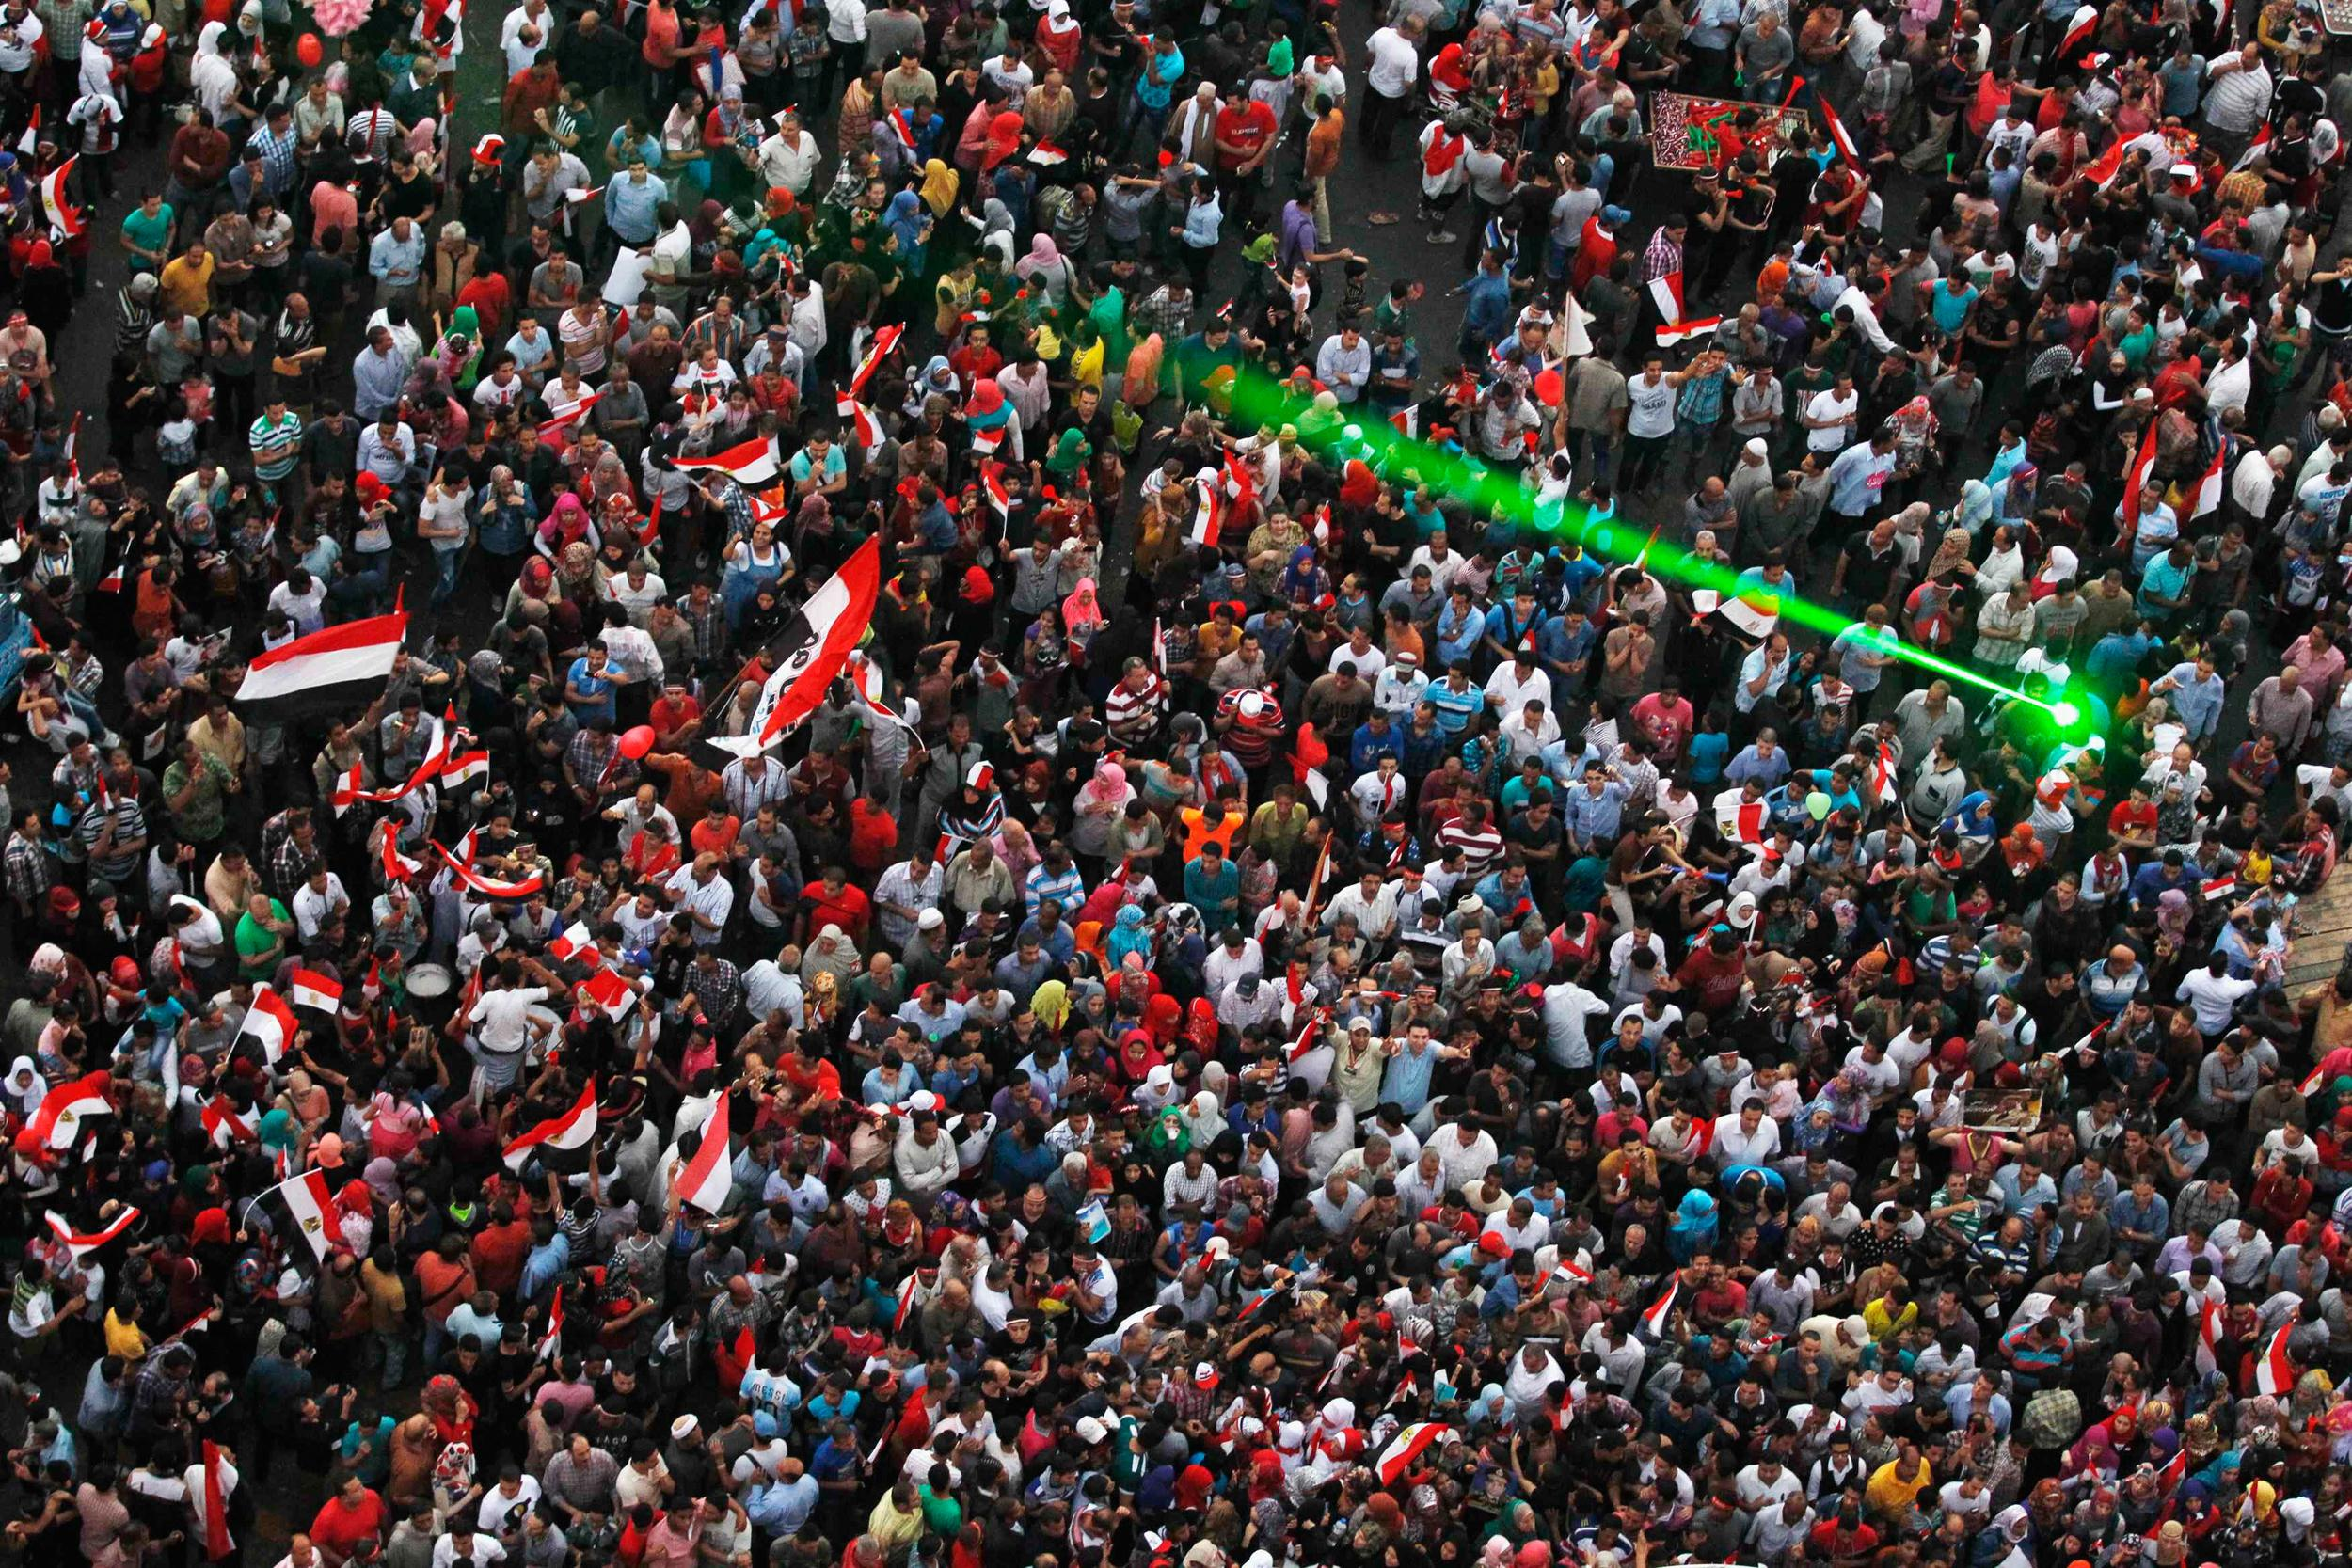 Image: Egyptians celebrate after swearing-in ceremony of president elect Abdel Fattah al-Sissi in Tahrir square in Cairo